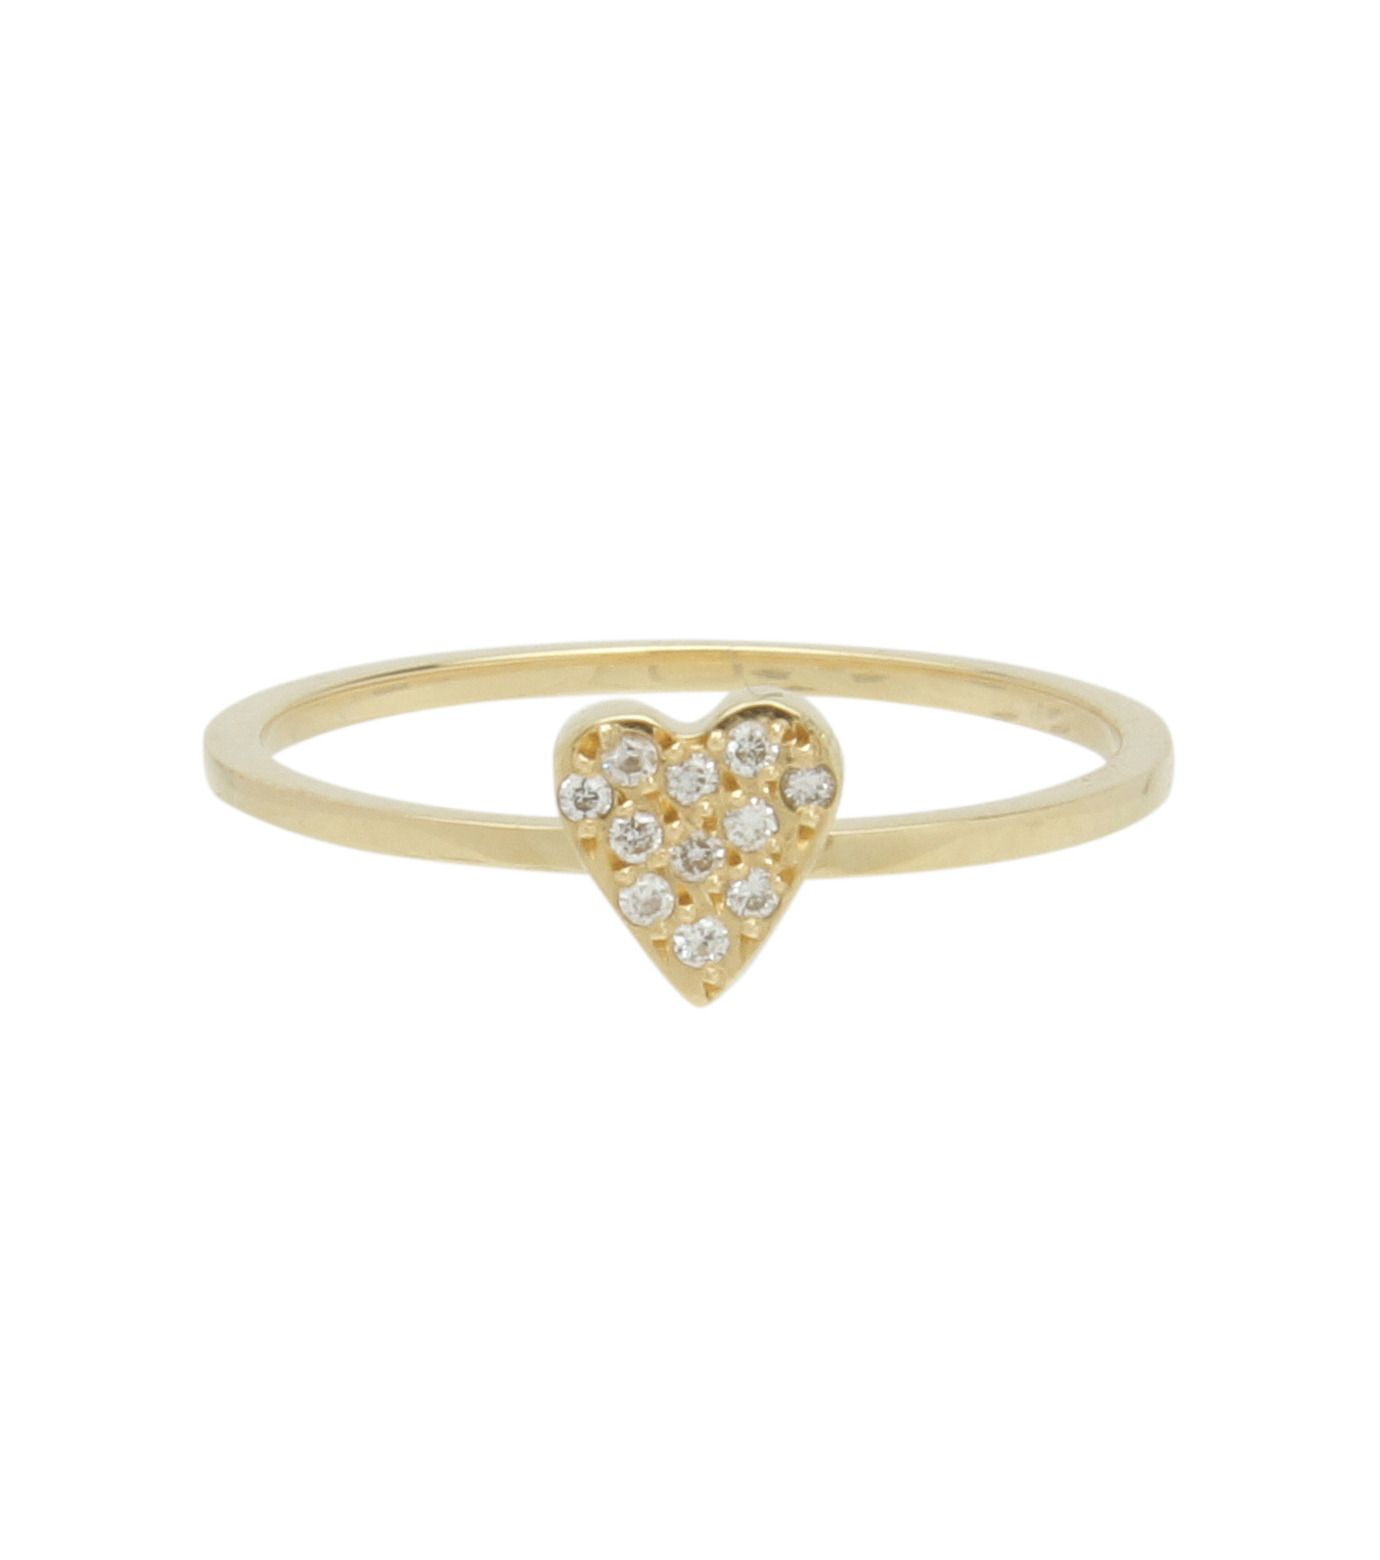 Ileana Makri(イリーナ マクリ)のLove Ring Yellow Gold-Diamond-GOLD(リング/ring)-O272-02-001-2 拡大詳細画像1